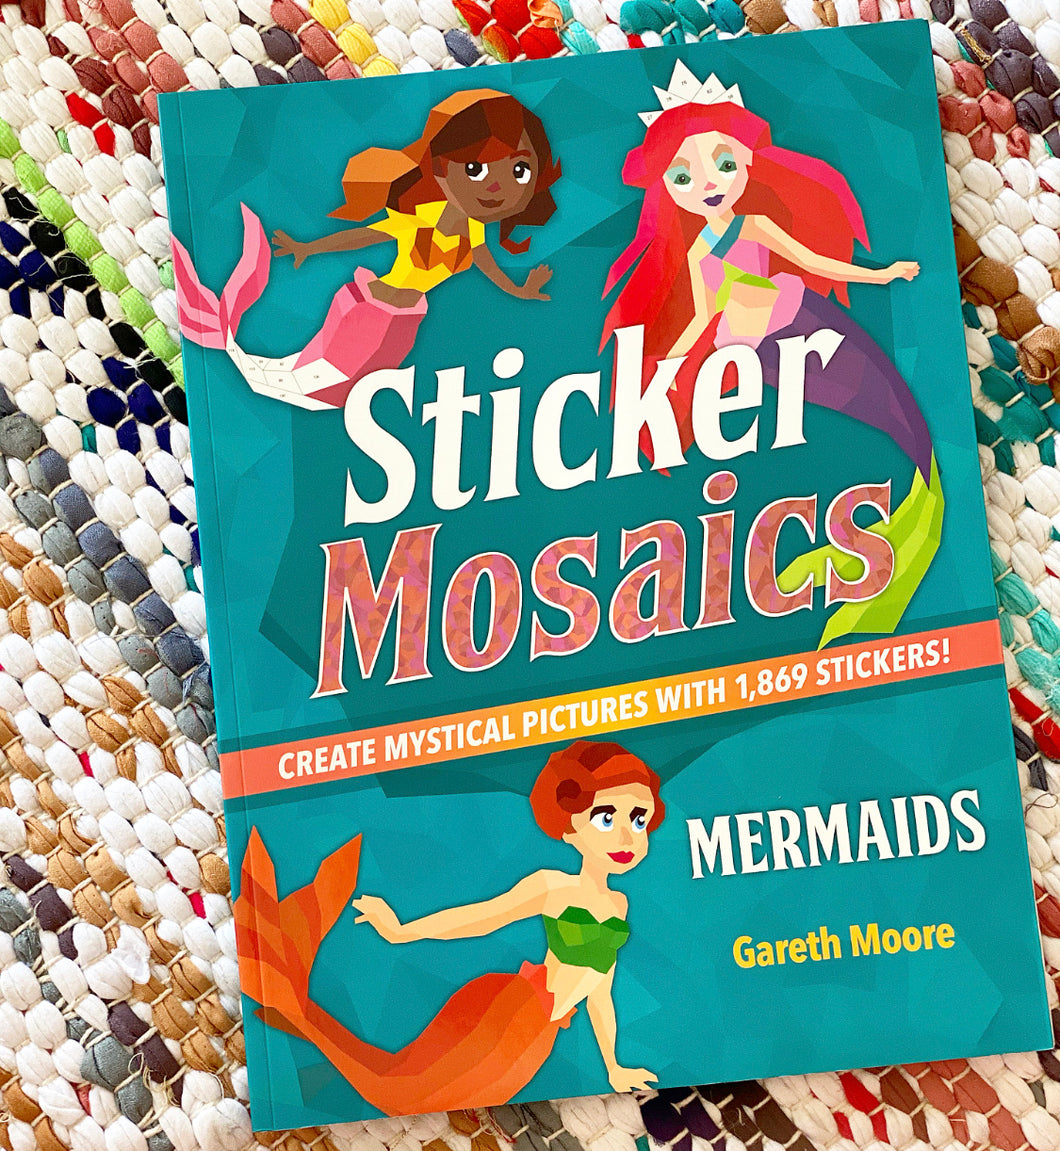 Sticker Mosaics: Mermaids: Create Mystical Pictures with 1,869 Stickers! | Gareth Moore